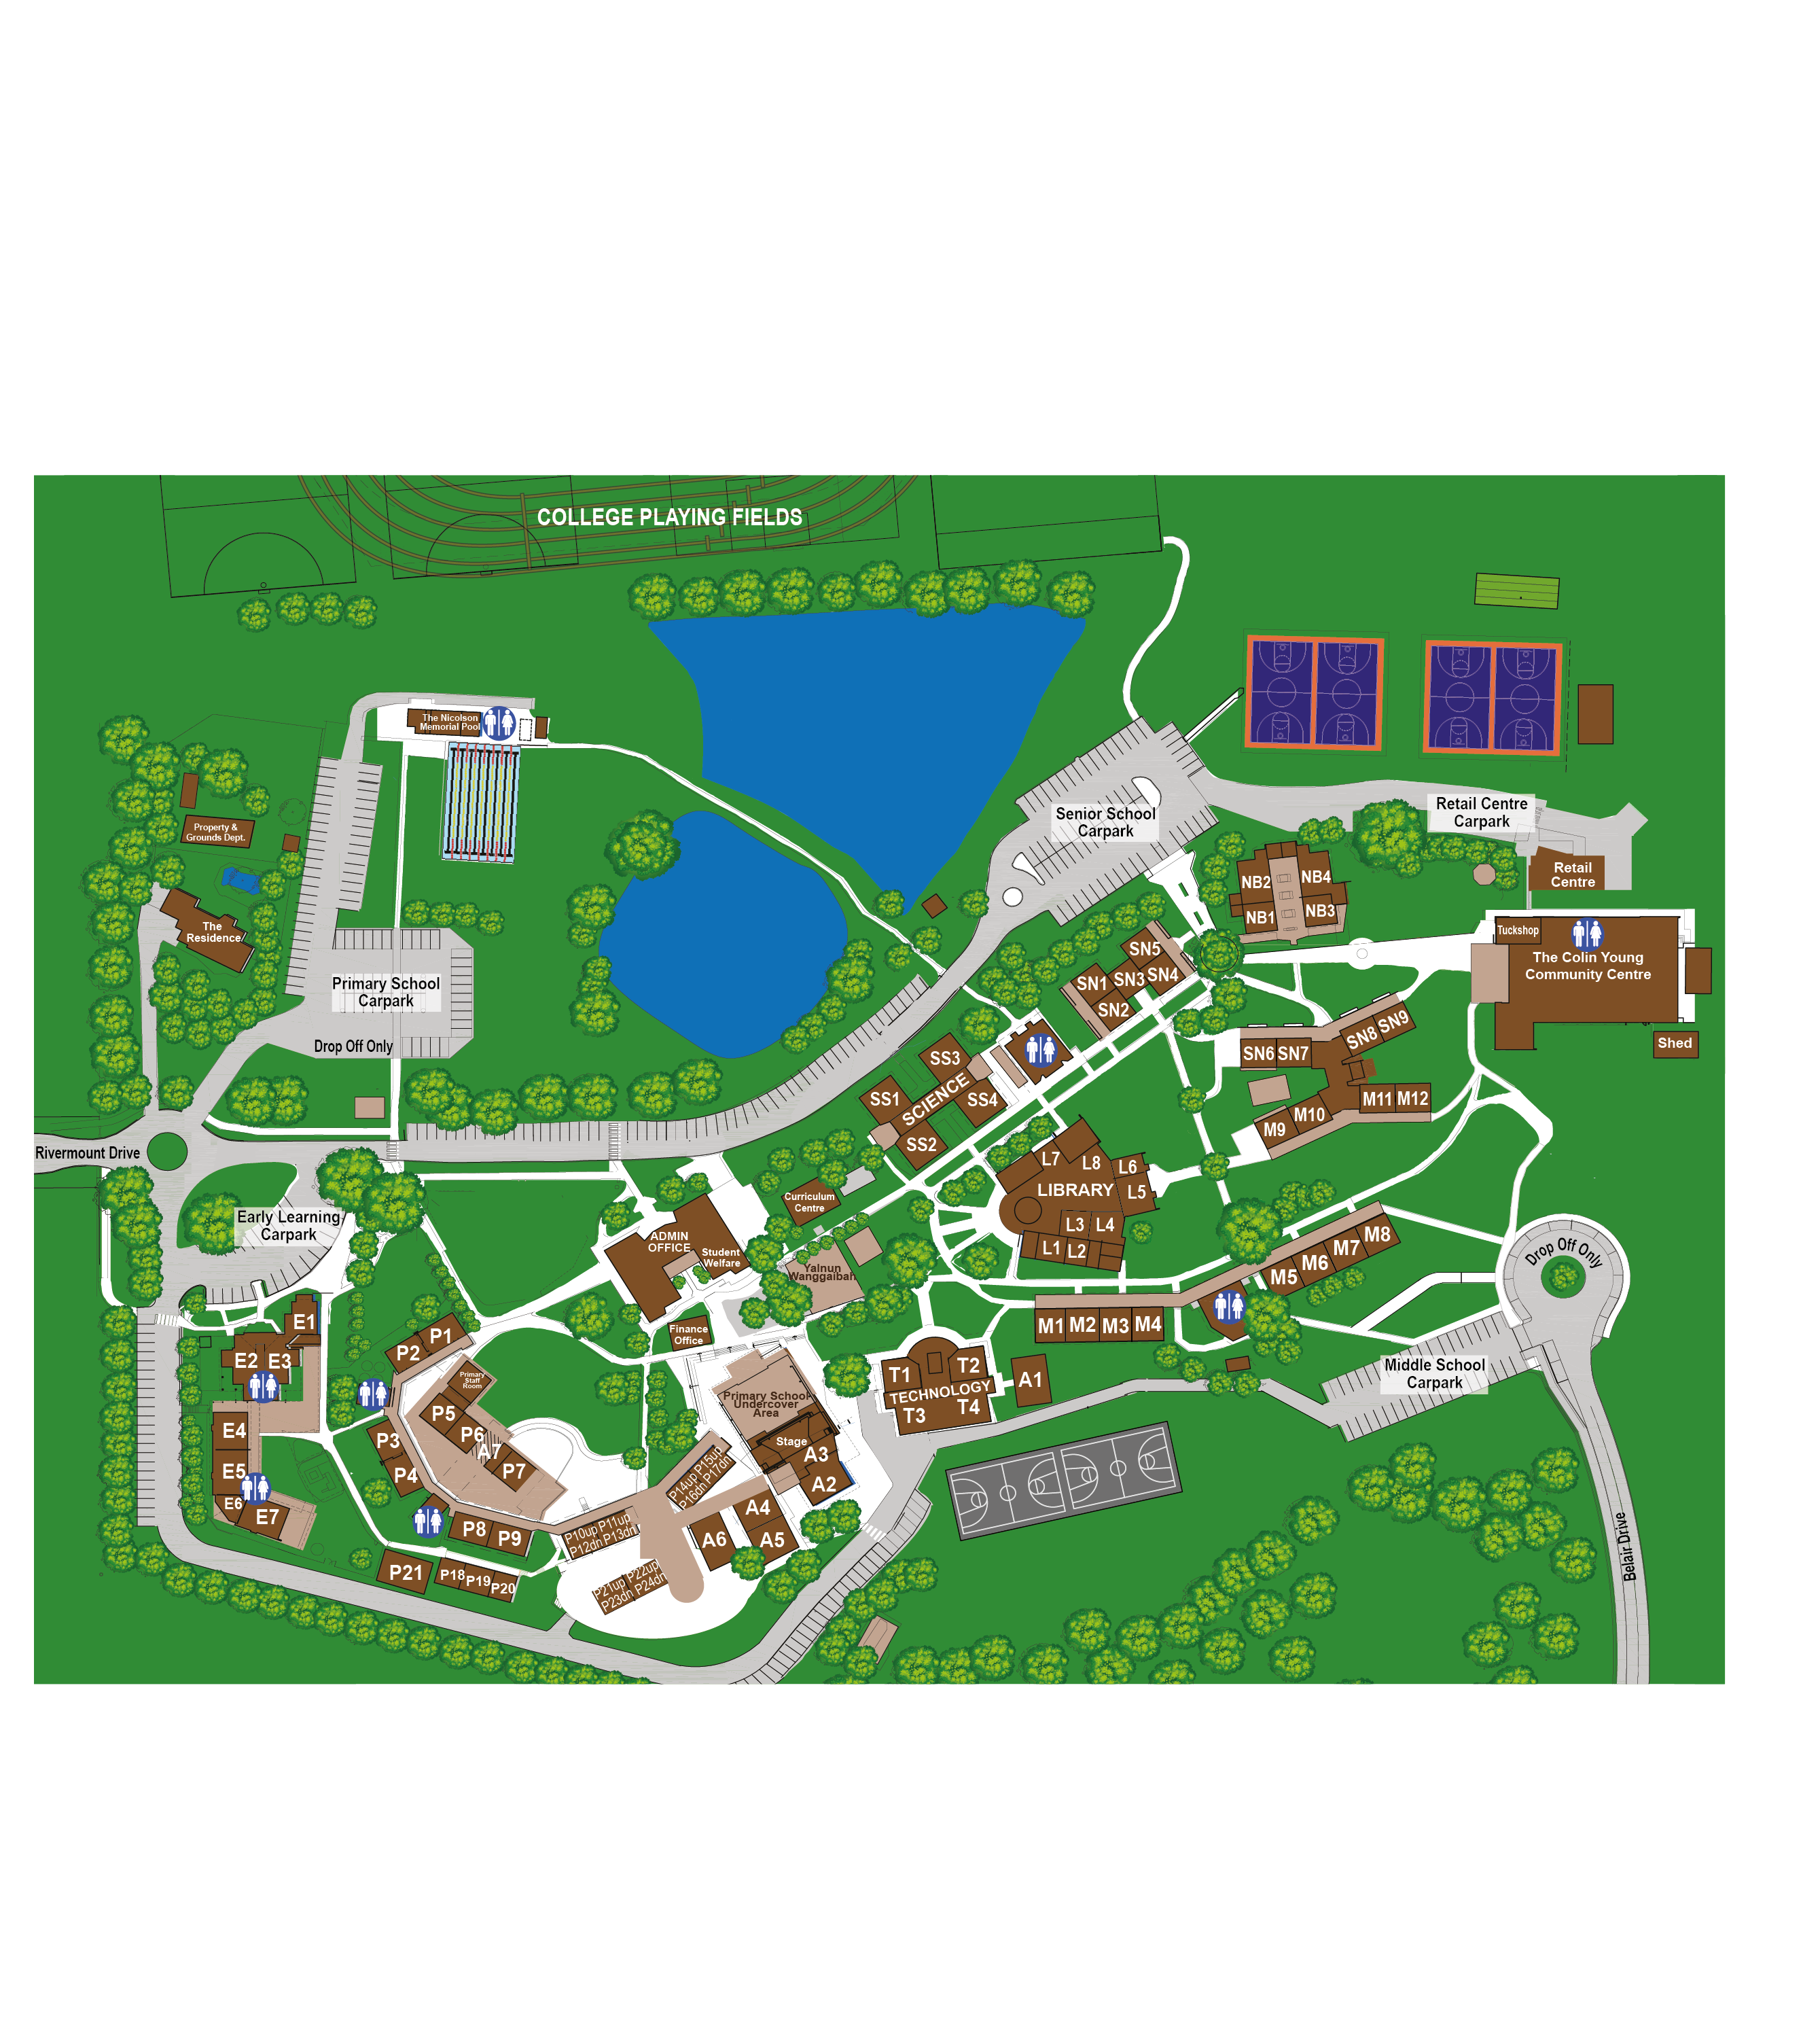 RMC-CAMPUS-MAP-2020_190926_140007.png?mtime=20190926140007#asset:2650